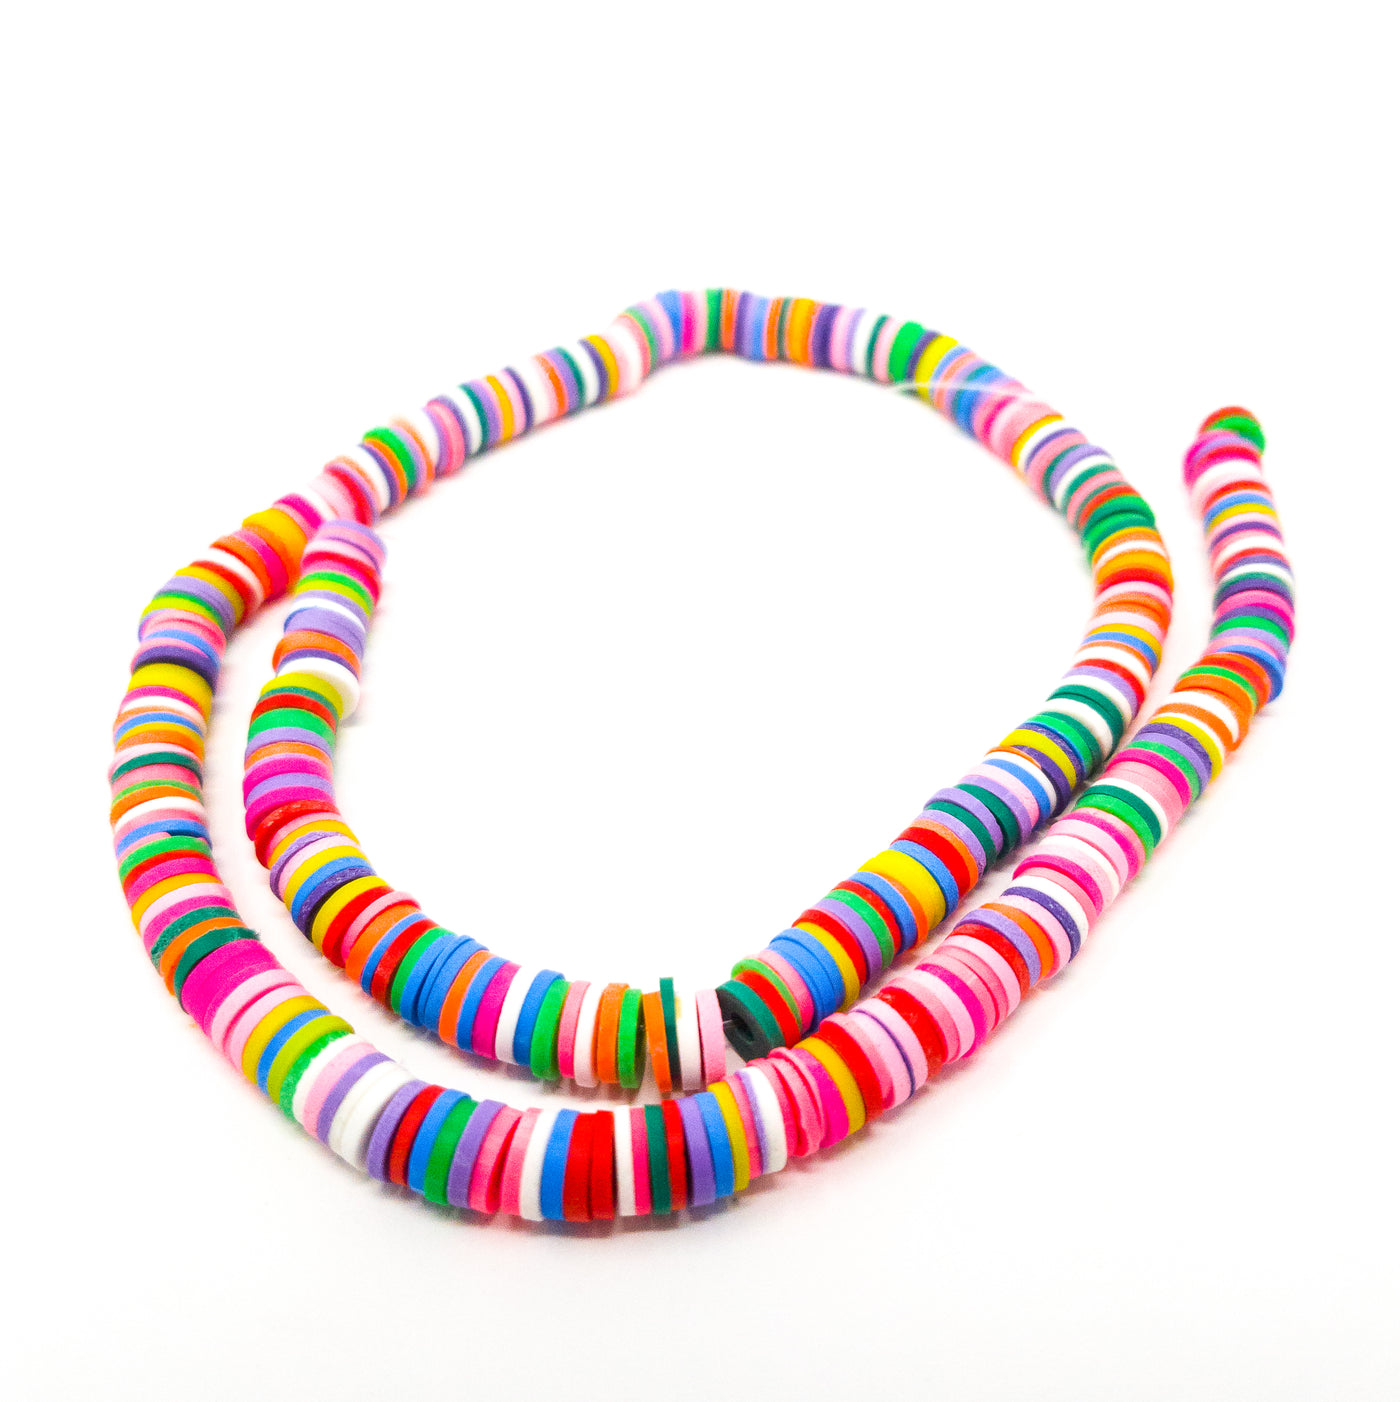 350 approx Bright Coloured 6 mm Clay Bead Spacers Average 1 mm Thick 2 mm Hole